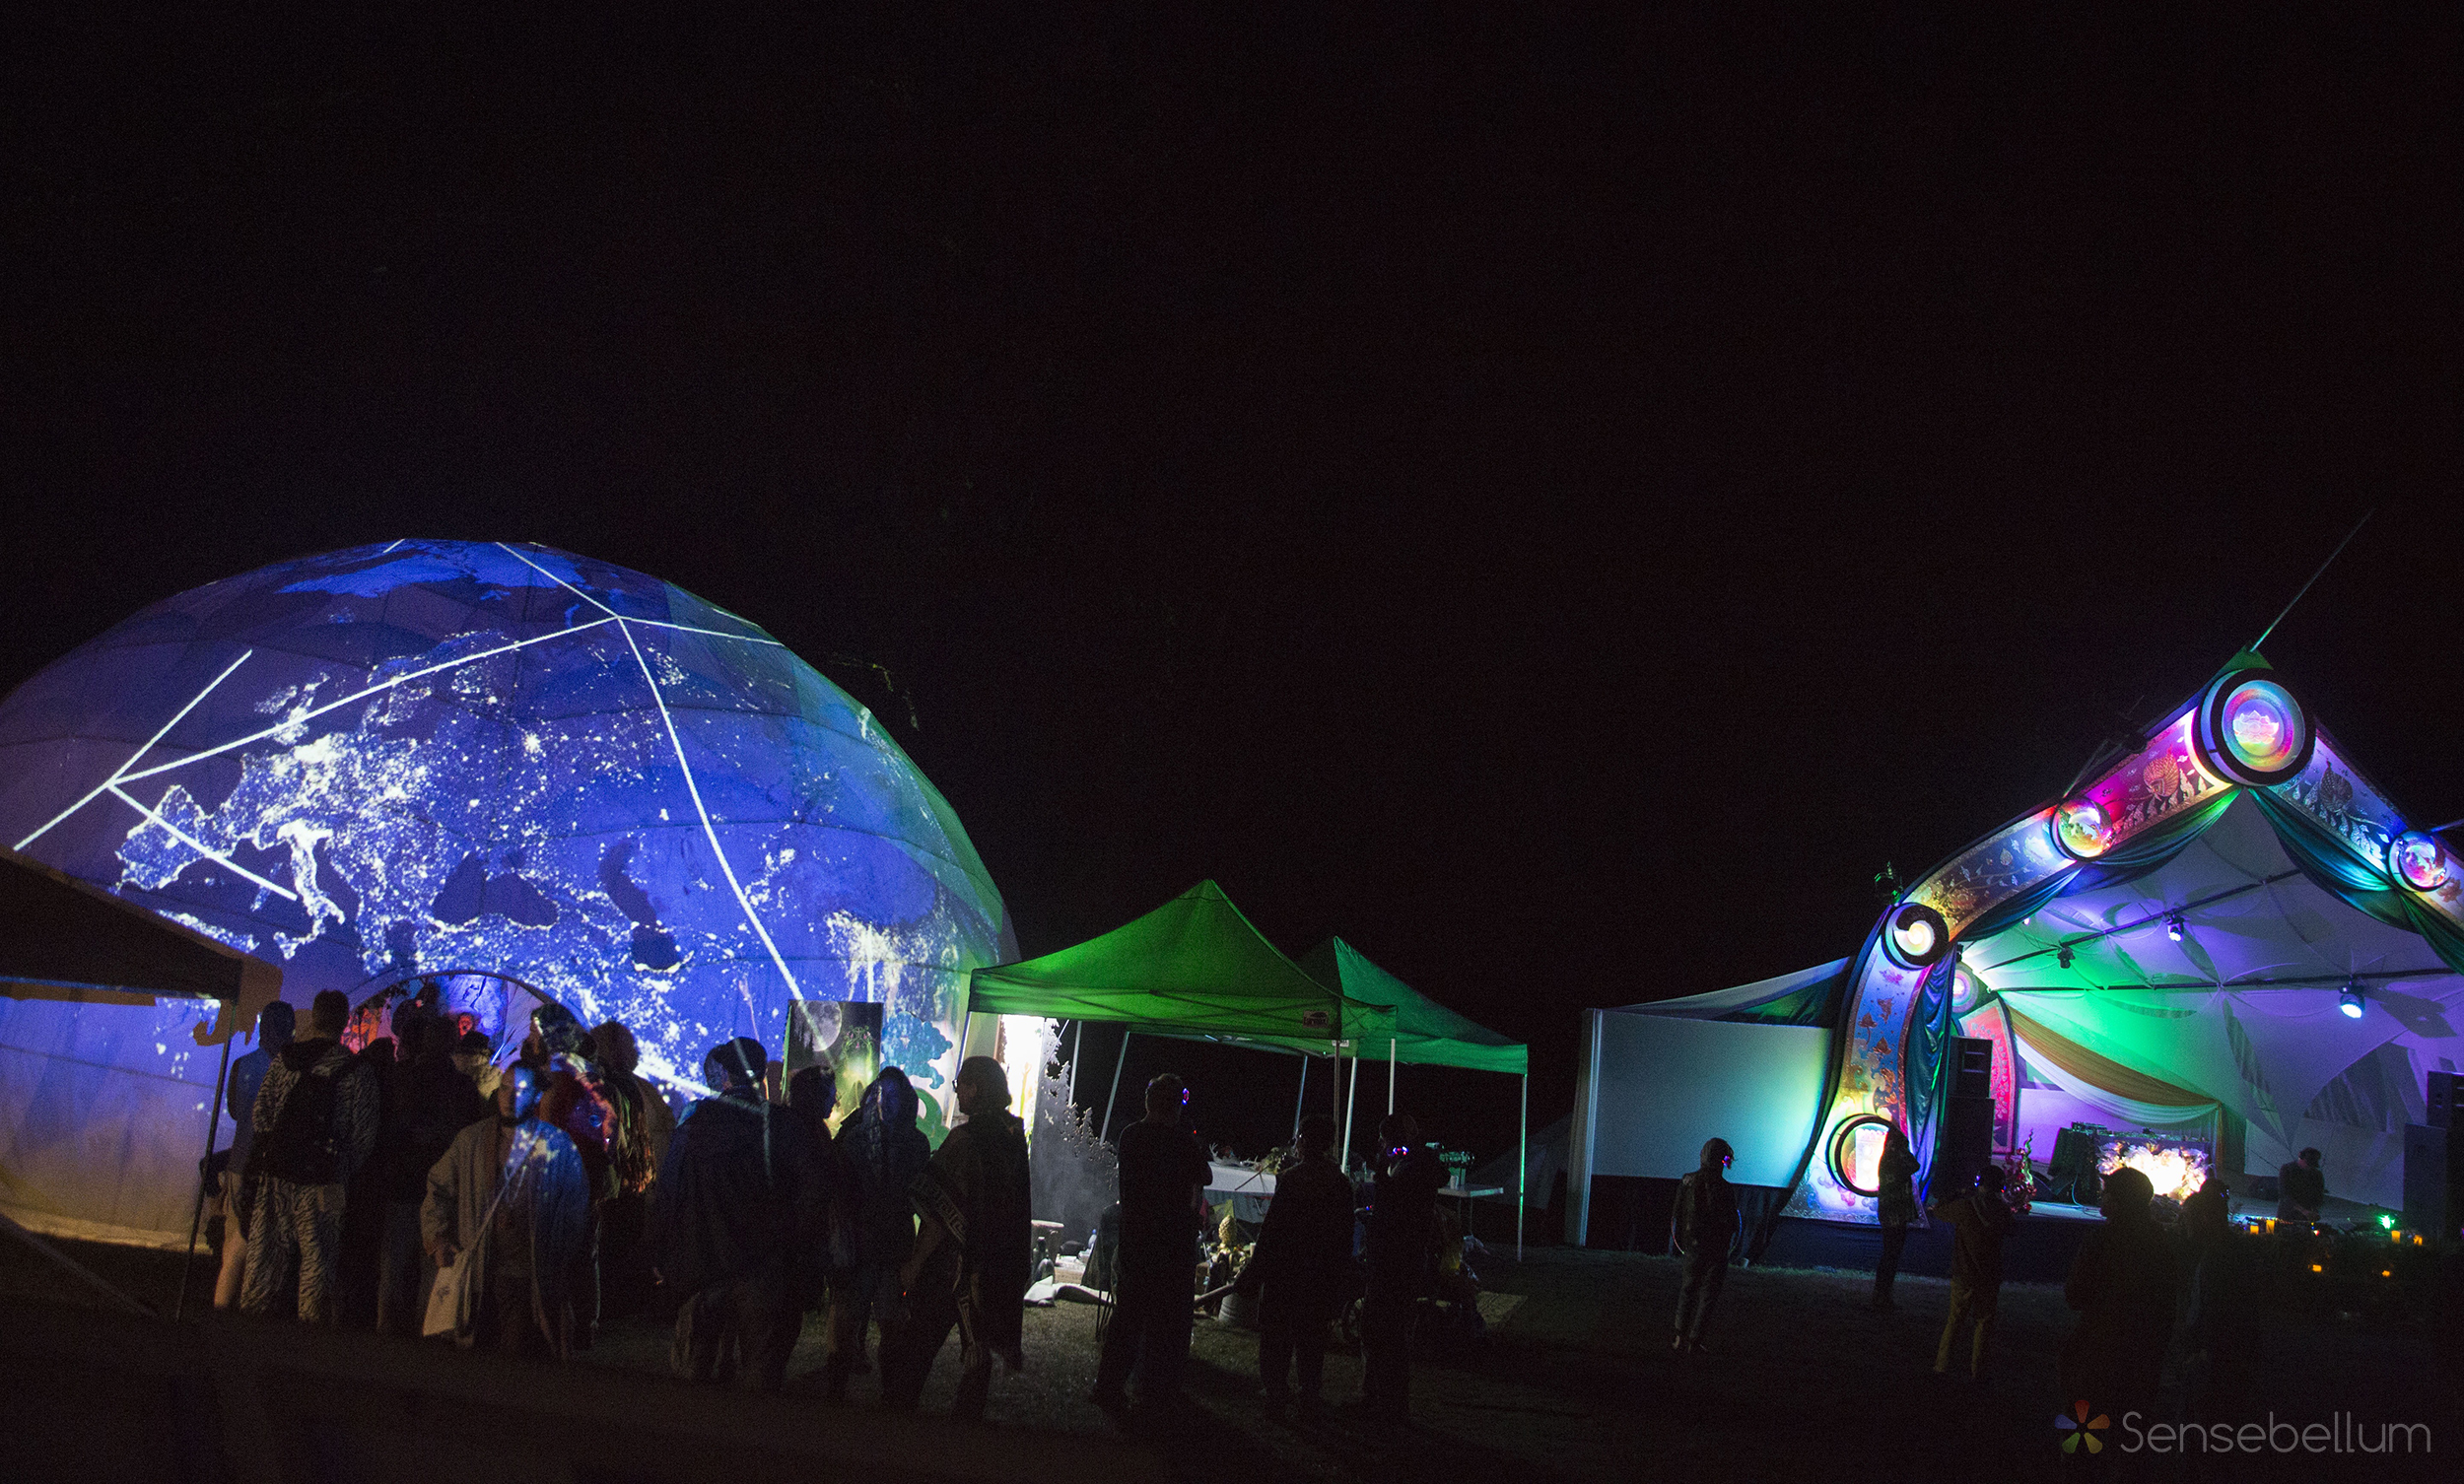 Sensebellum Geodesic Dome Projection Mapping 3D Visuals VJ Company Seattle West Coast Imagine Festival 2018 26 copy.jpg